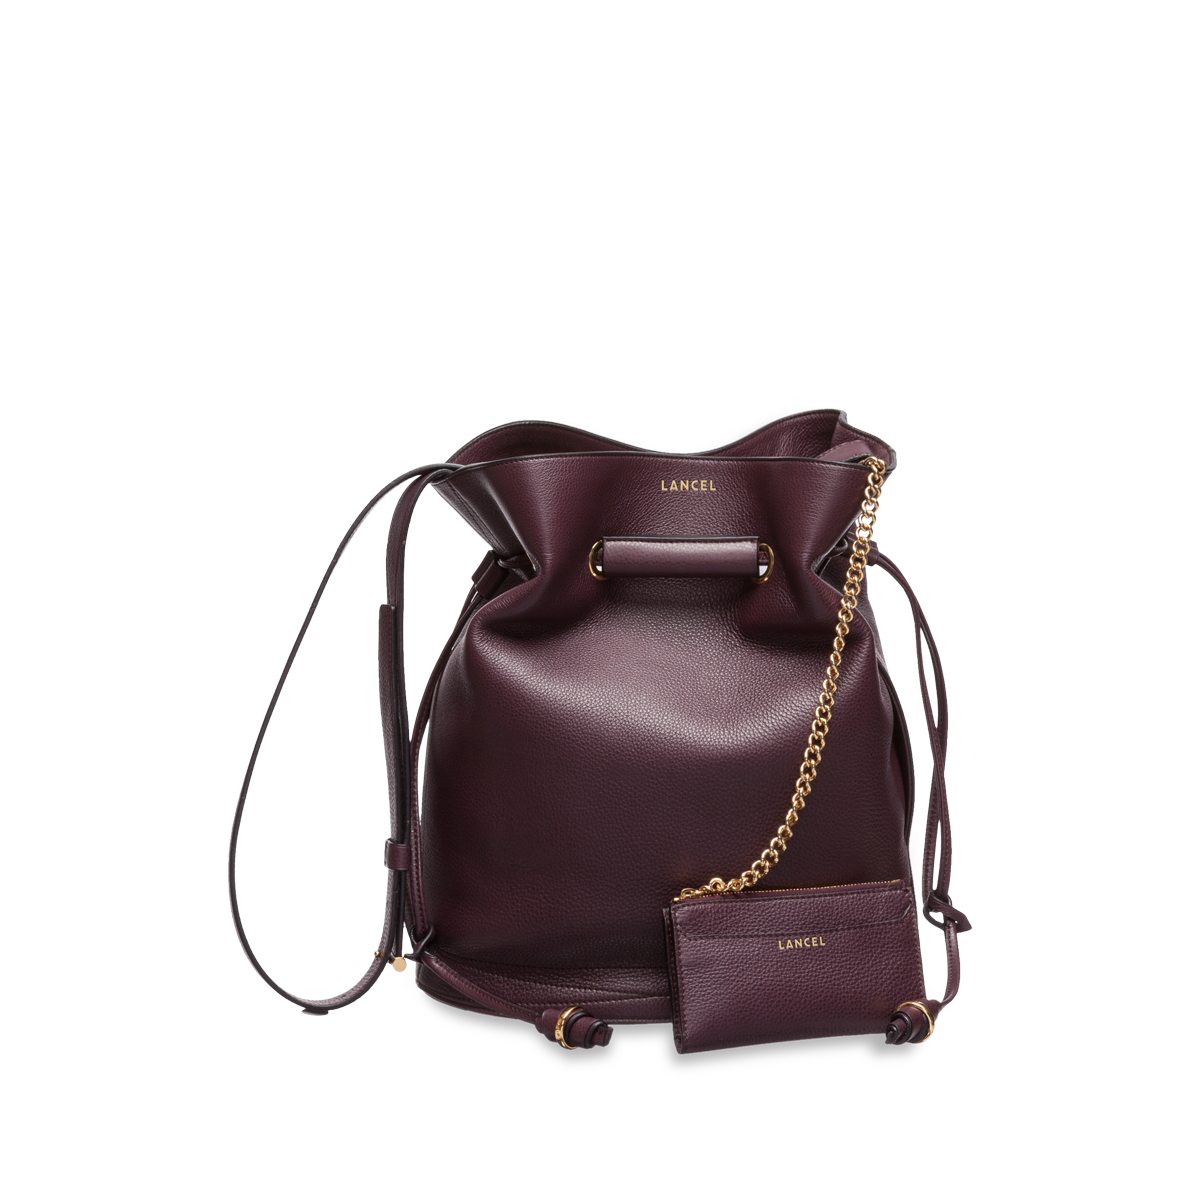 bfb4d9b1f1 Le Huit : Femme - Sacs à Main - Haute-Maroquinerie - Lancel site officiel |  Pretty accessories and Perfect Pieces | Bags, Bag Accessories, Bags 2018